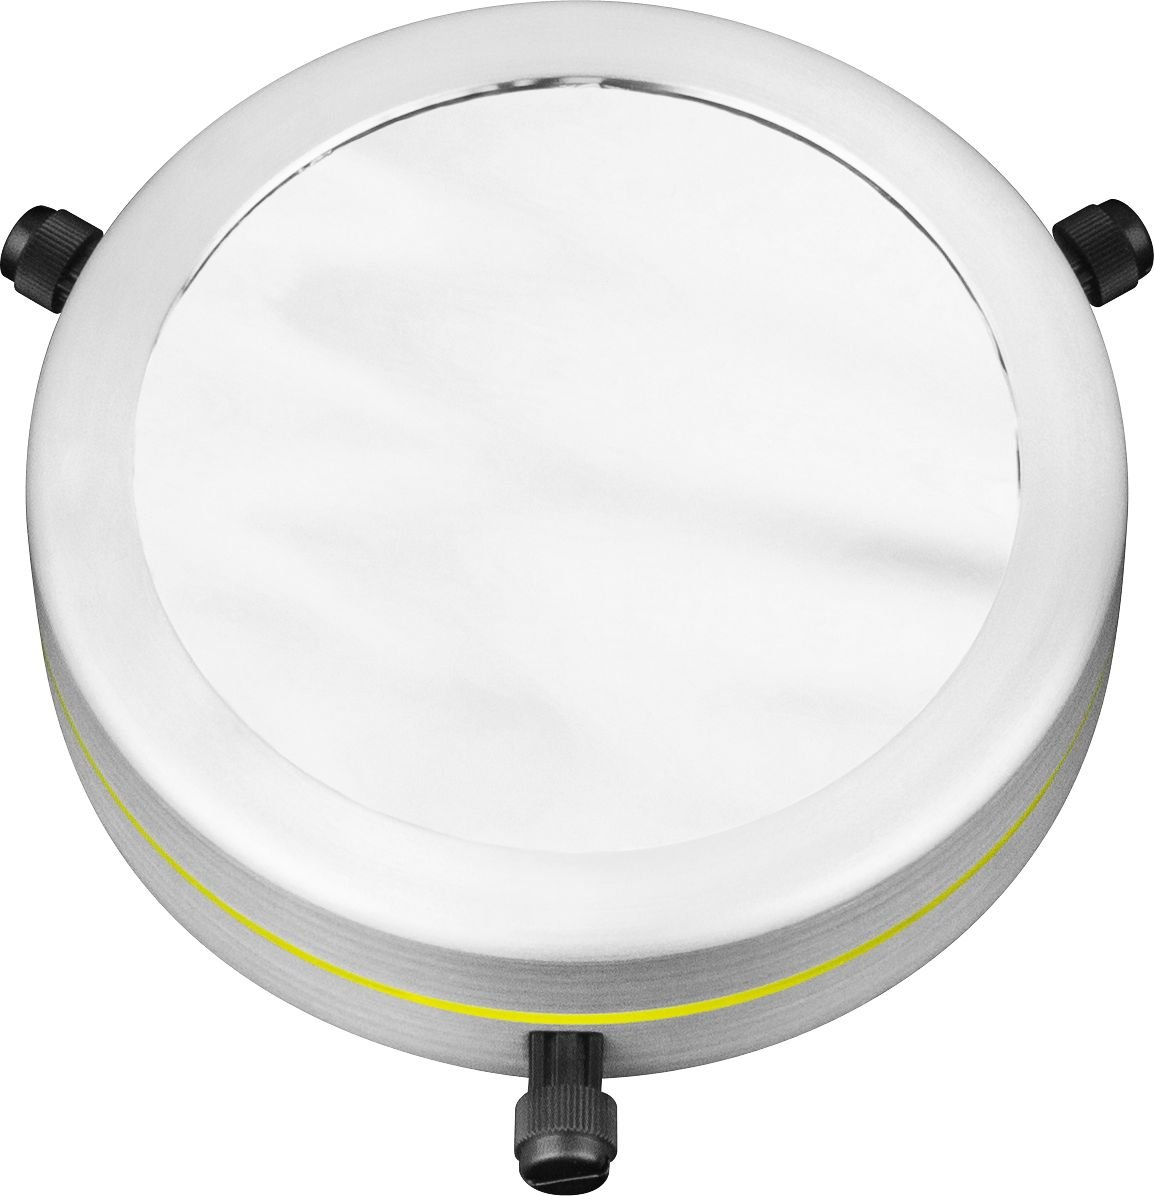 Orion 07752 Deluxe Safety Film Solar Filter 3.68 Inch Inside Diameter (Silver)